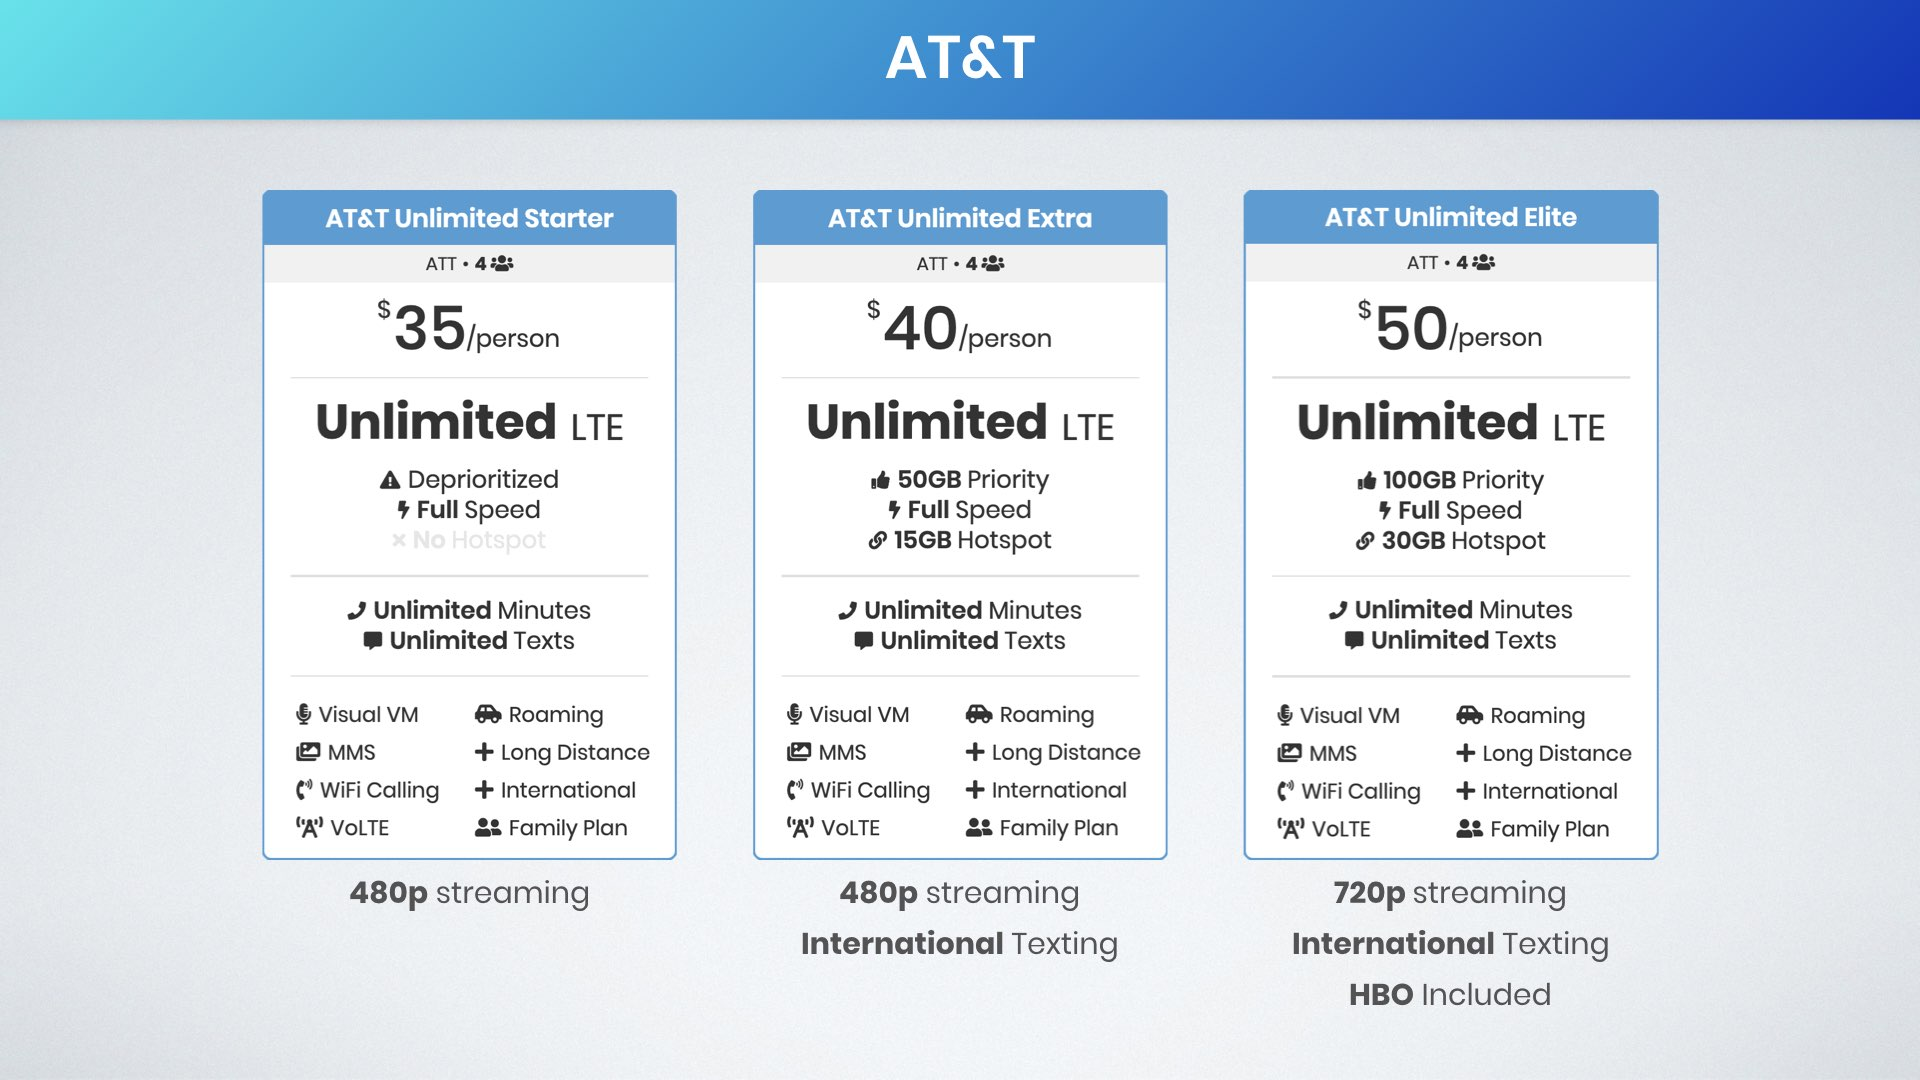 graphic comparing AT&T's unlimited data plans